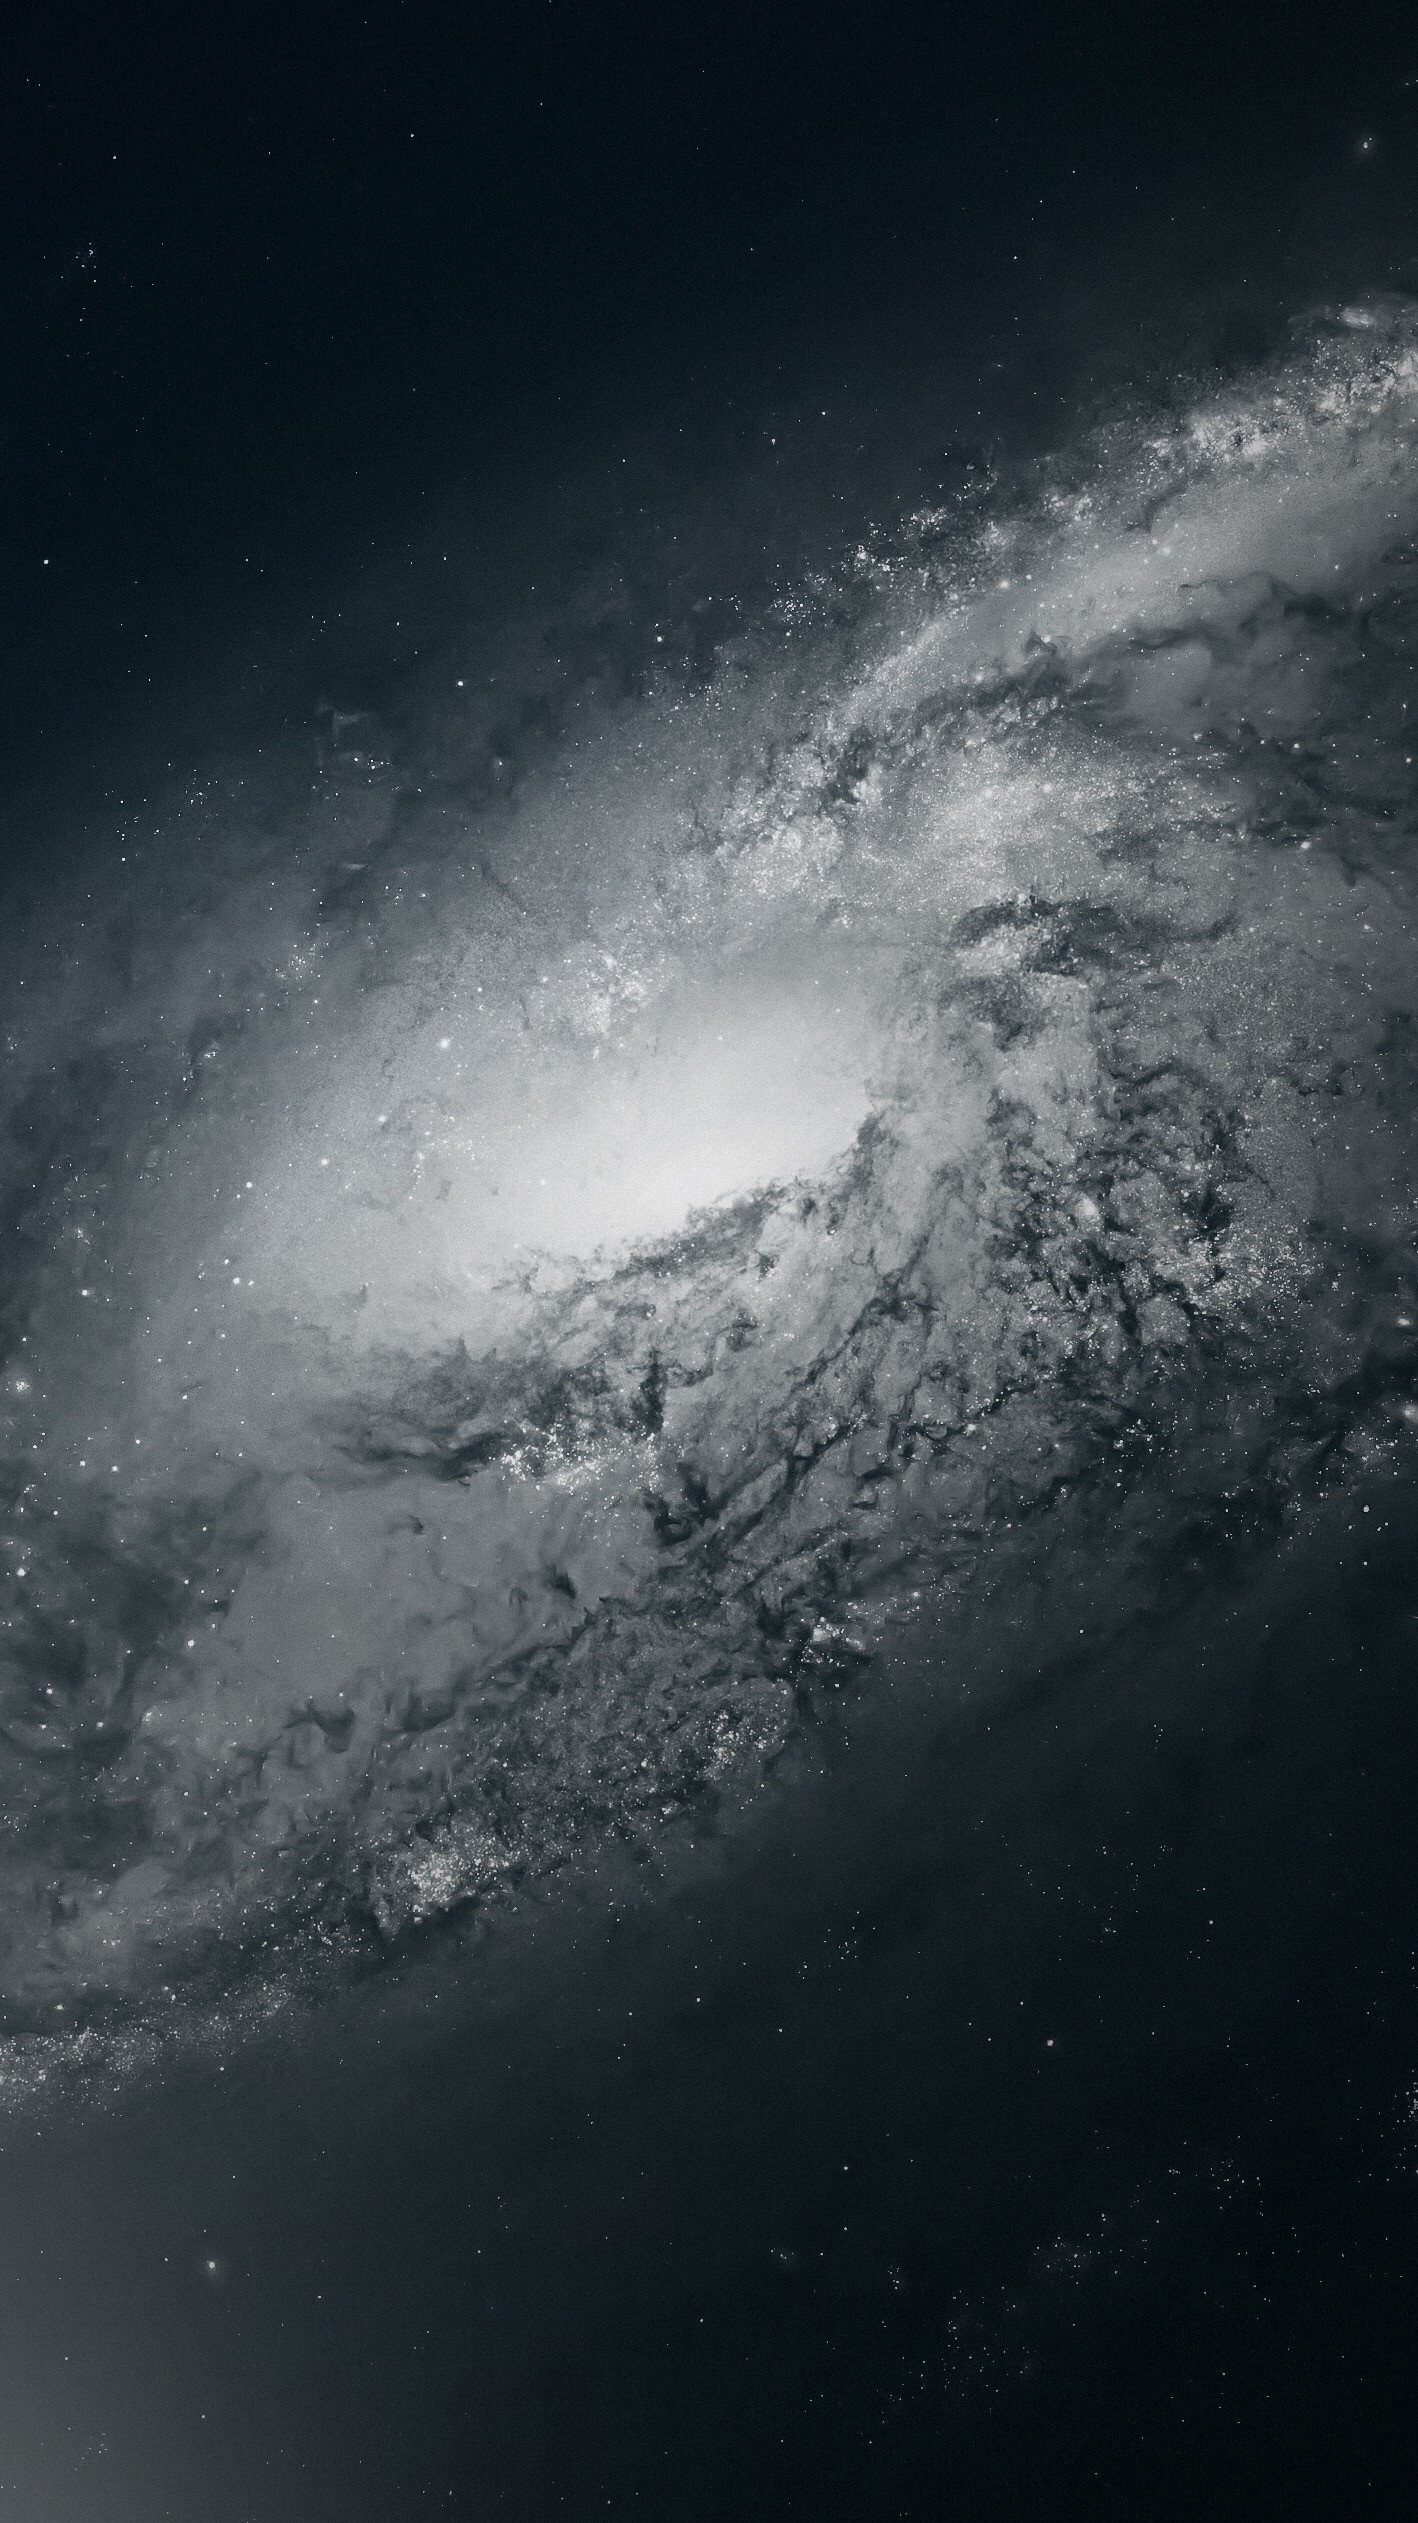 General 1418x2523 space monochrome space art galaxy digital art